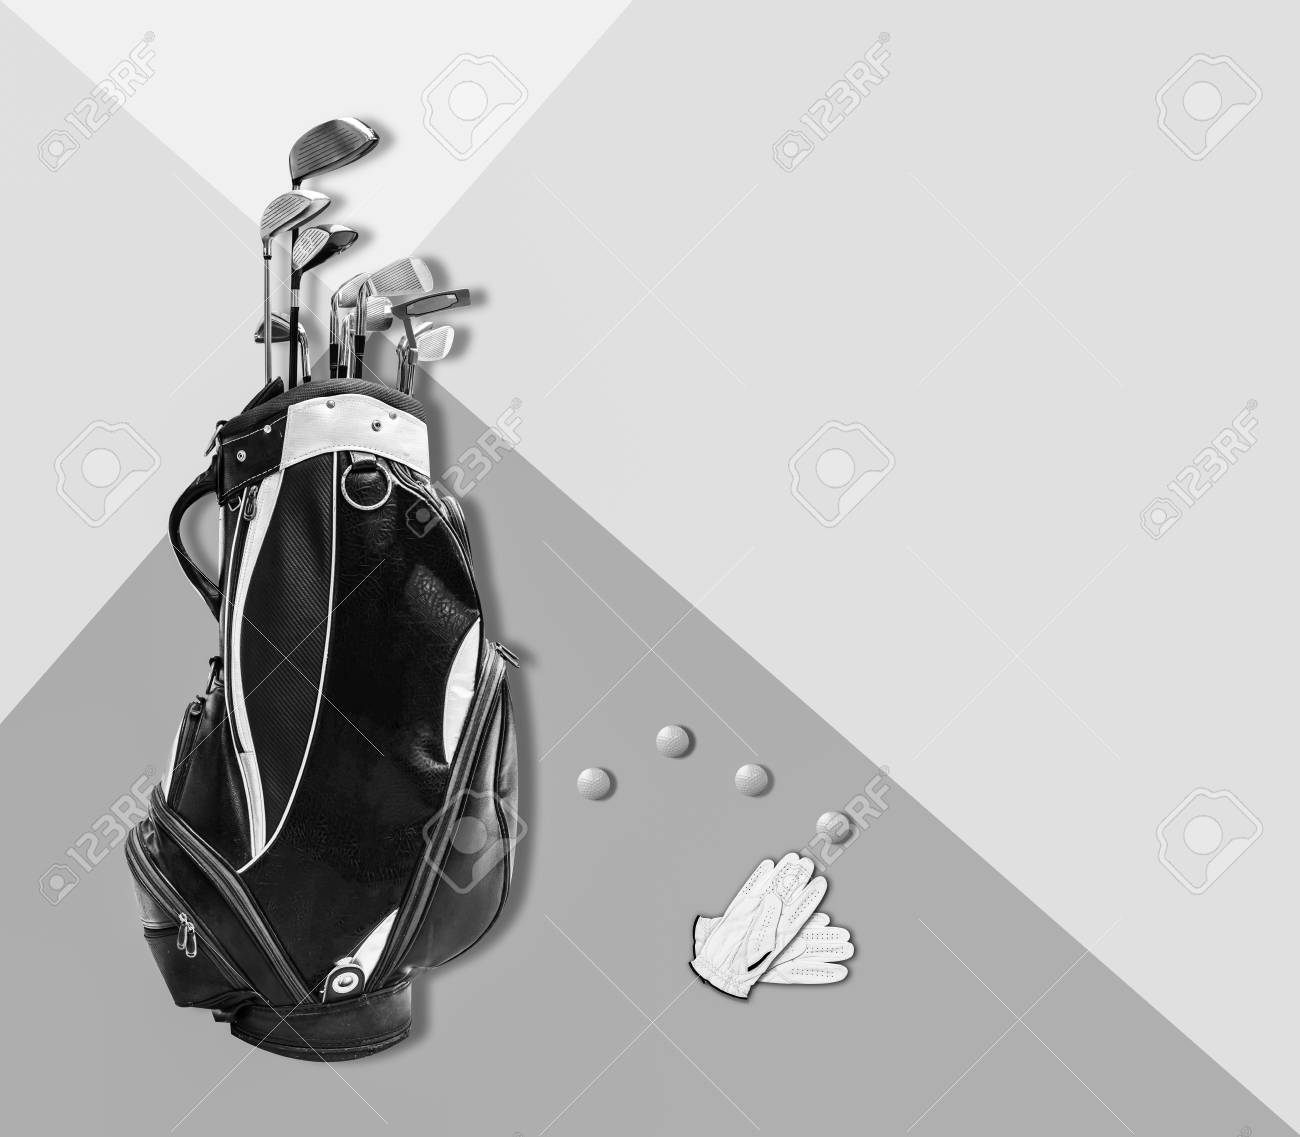 Golf Summer Is Coming Concept Golf Equipment Golf Bag And Golf Stock Photo Picture And Royalty Free Image Image 101546834